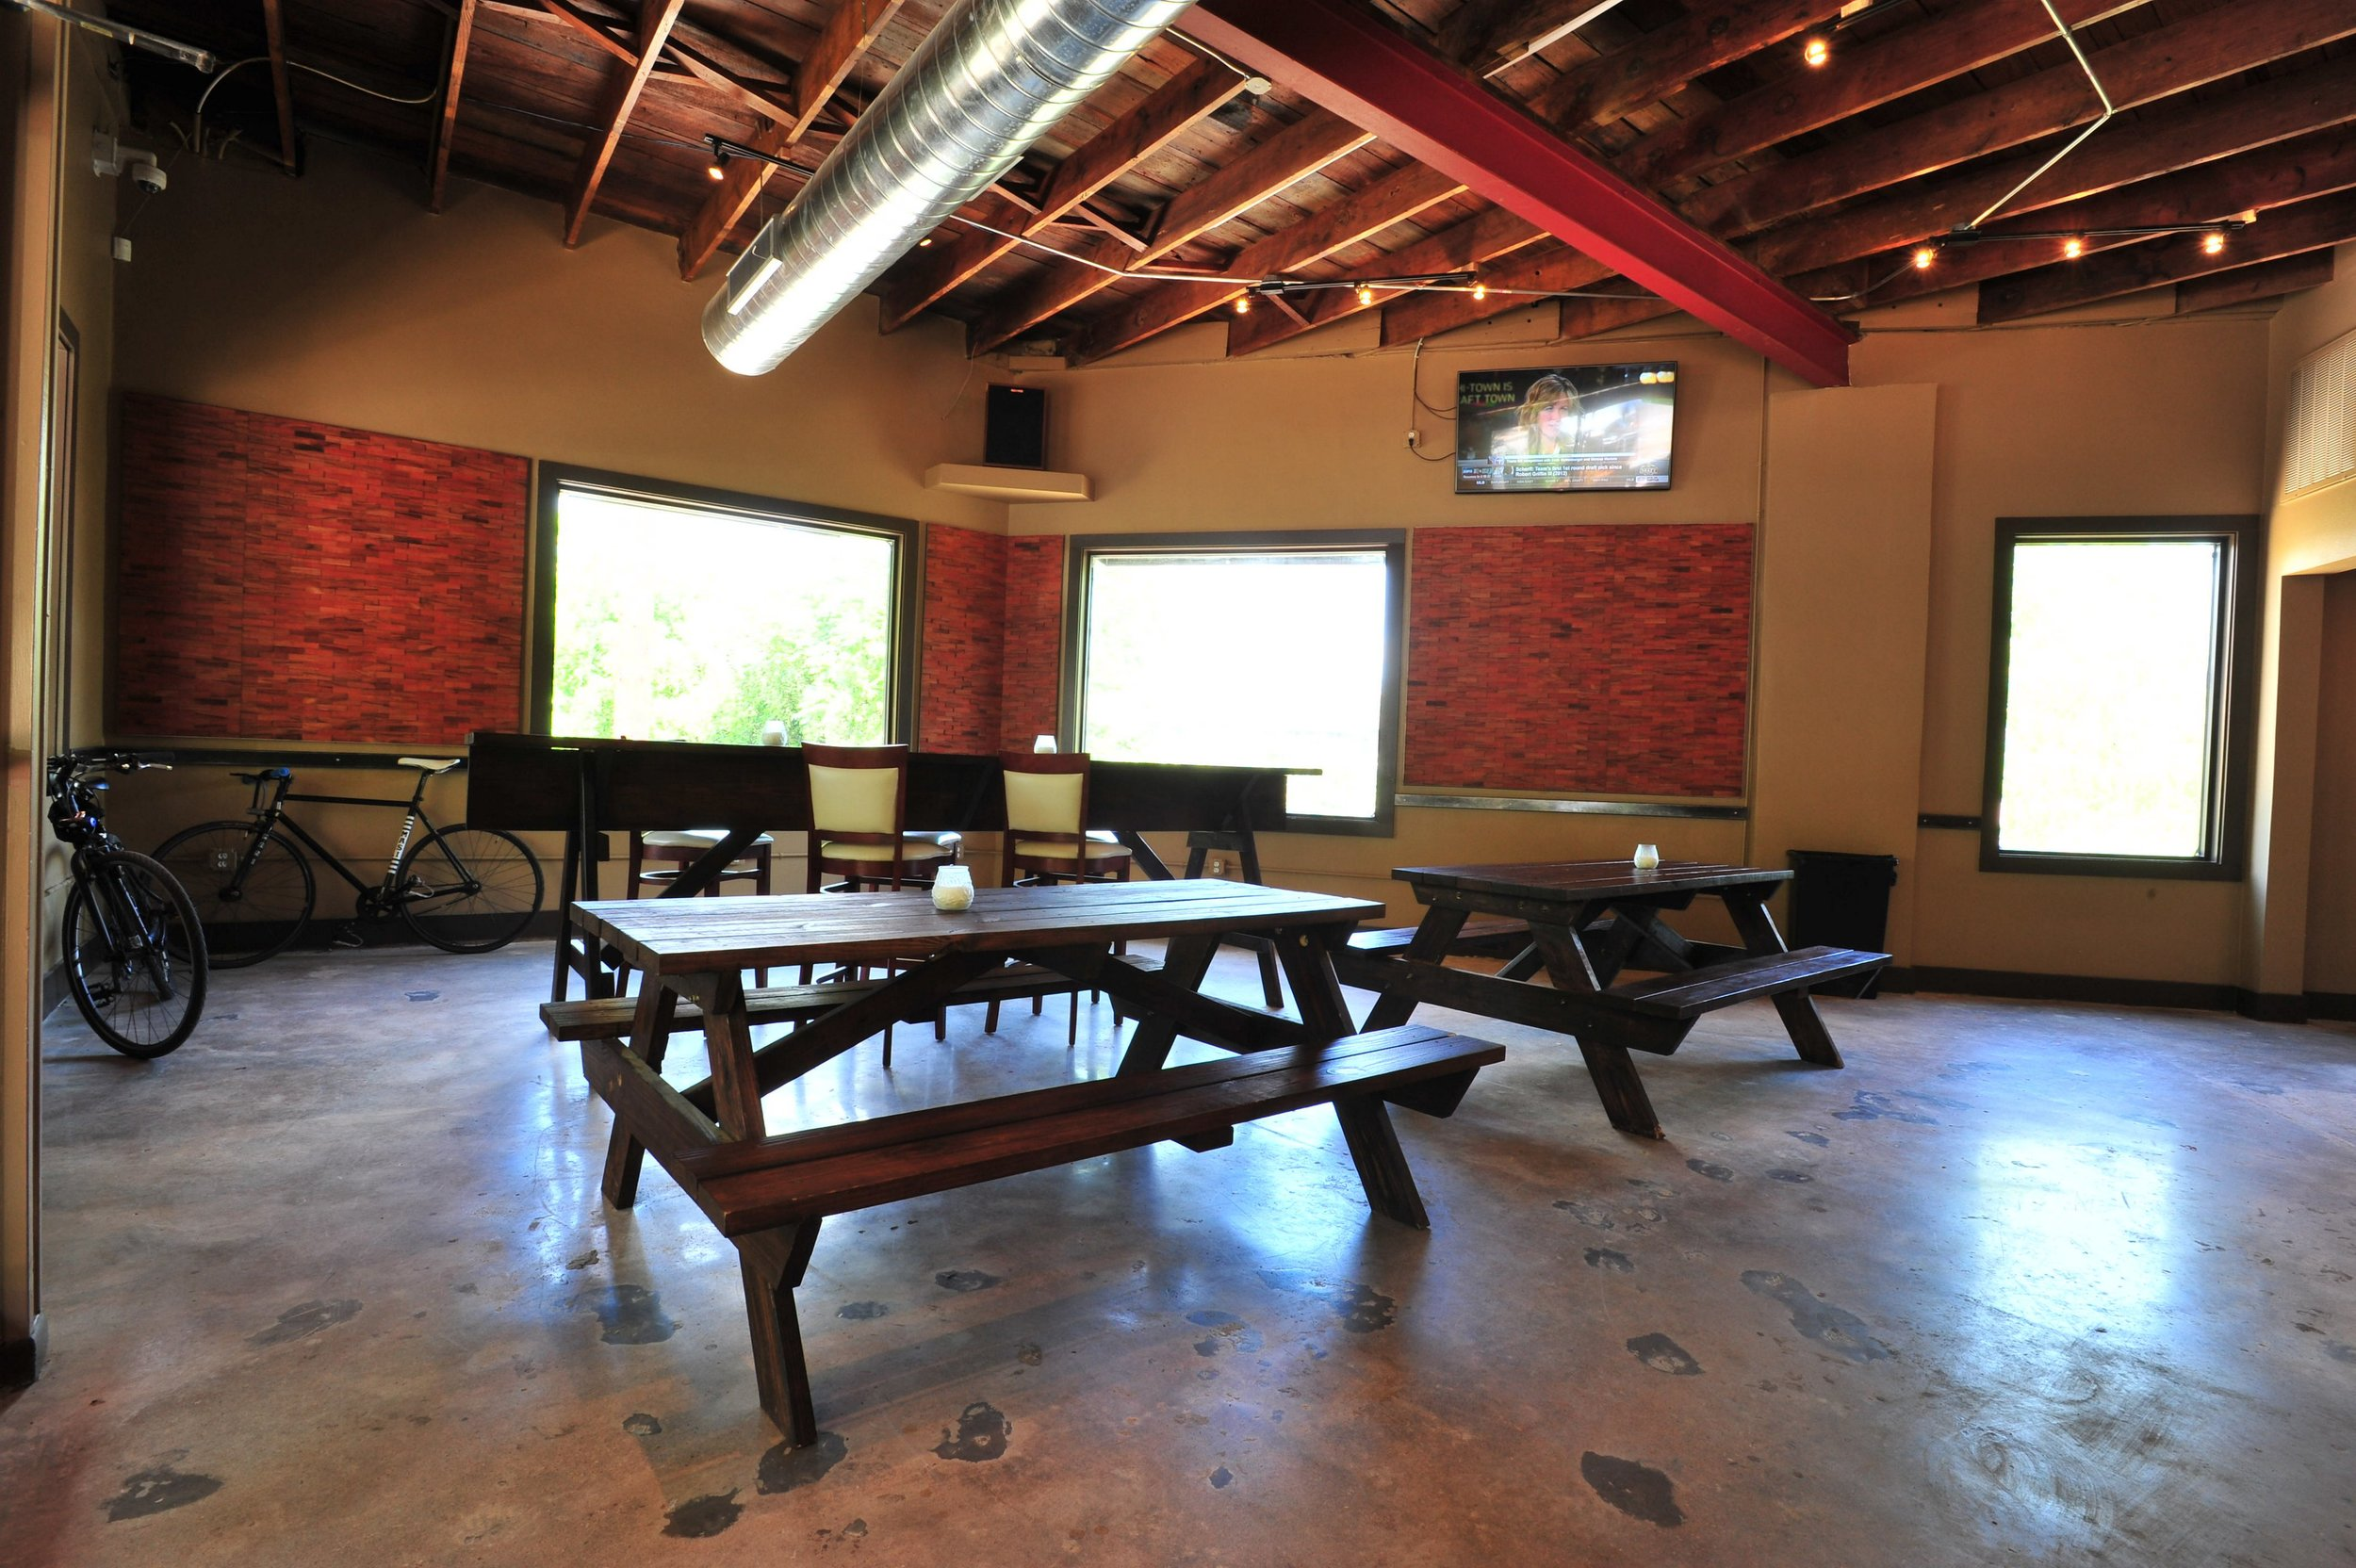 3-simple-stained-concrete-floors-cost-diy-stained-concrete-floors-cost-vs-tile-stained-concrete-floors-cost-san-antonio-stained-concrete-floors-costs-stained-concrete-floors-cost-per-square-foot.jpg